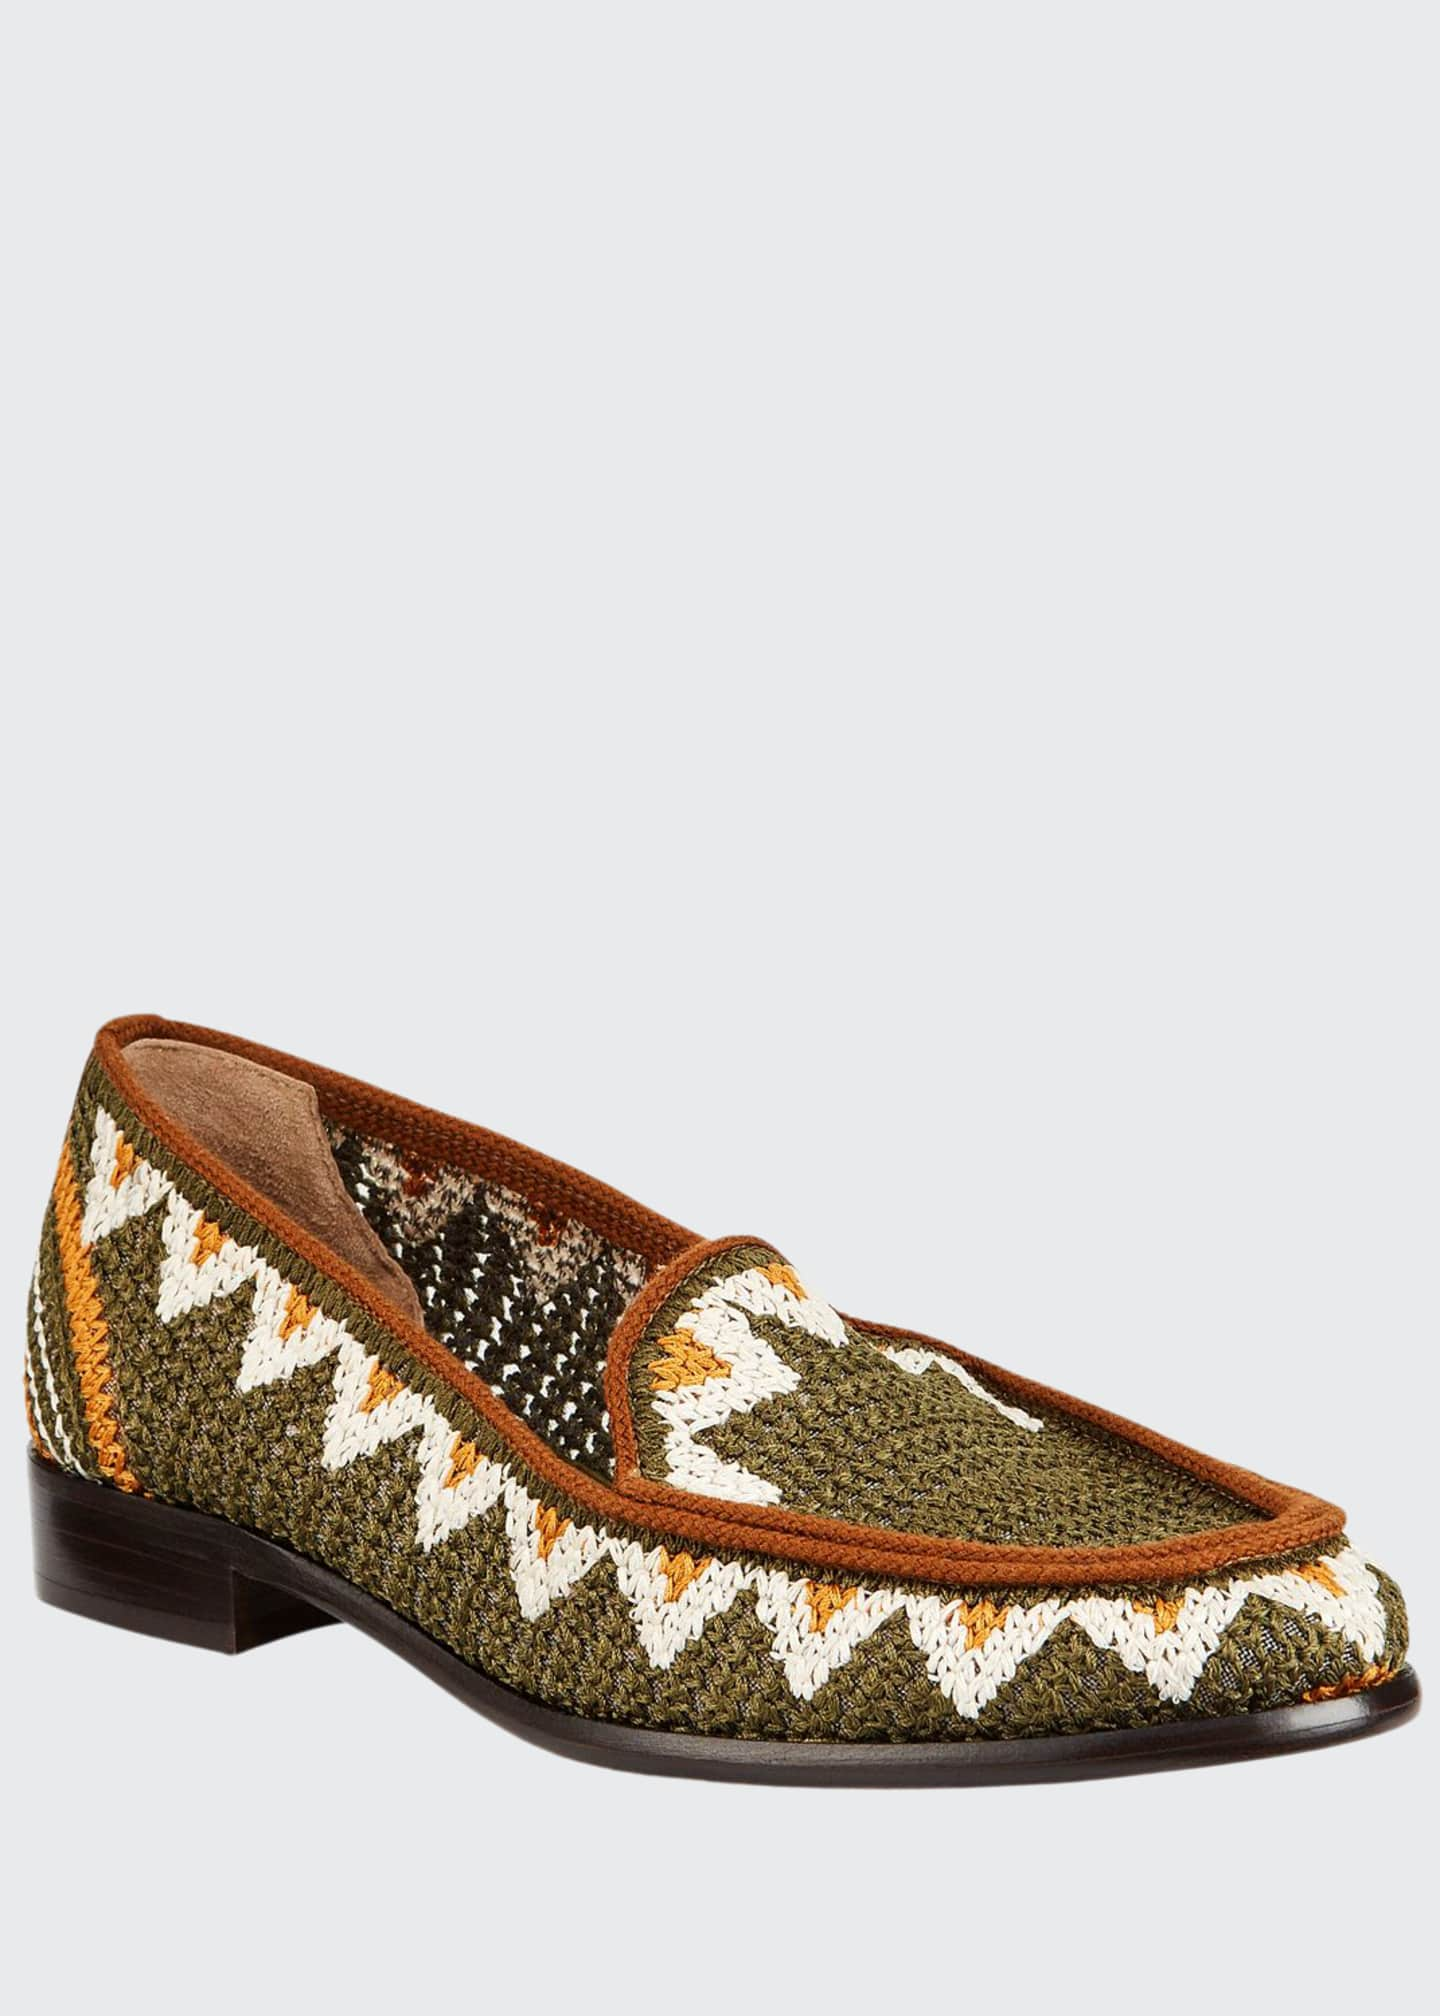 Tabitha Simmons Blakie Sol Woven Loafers, Olive